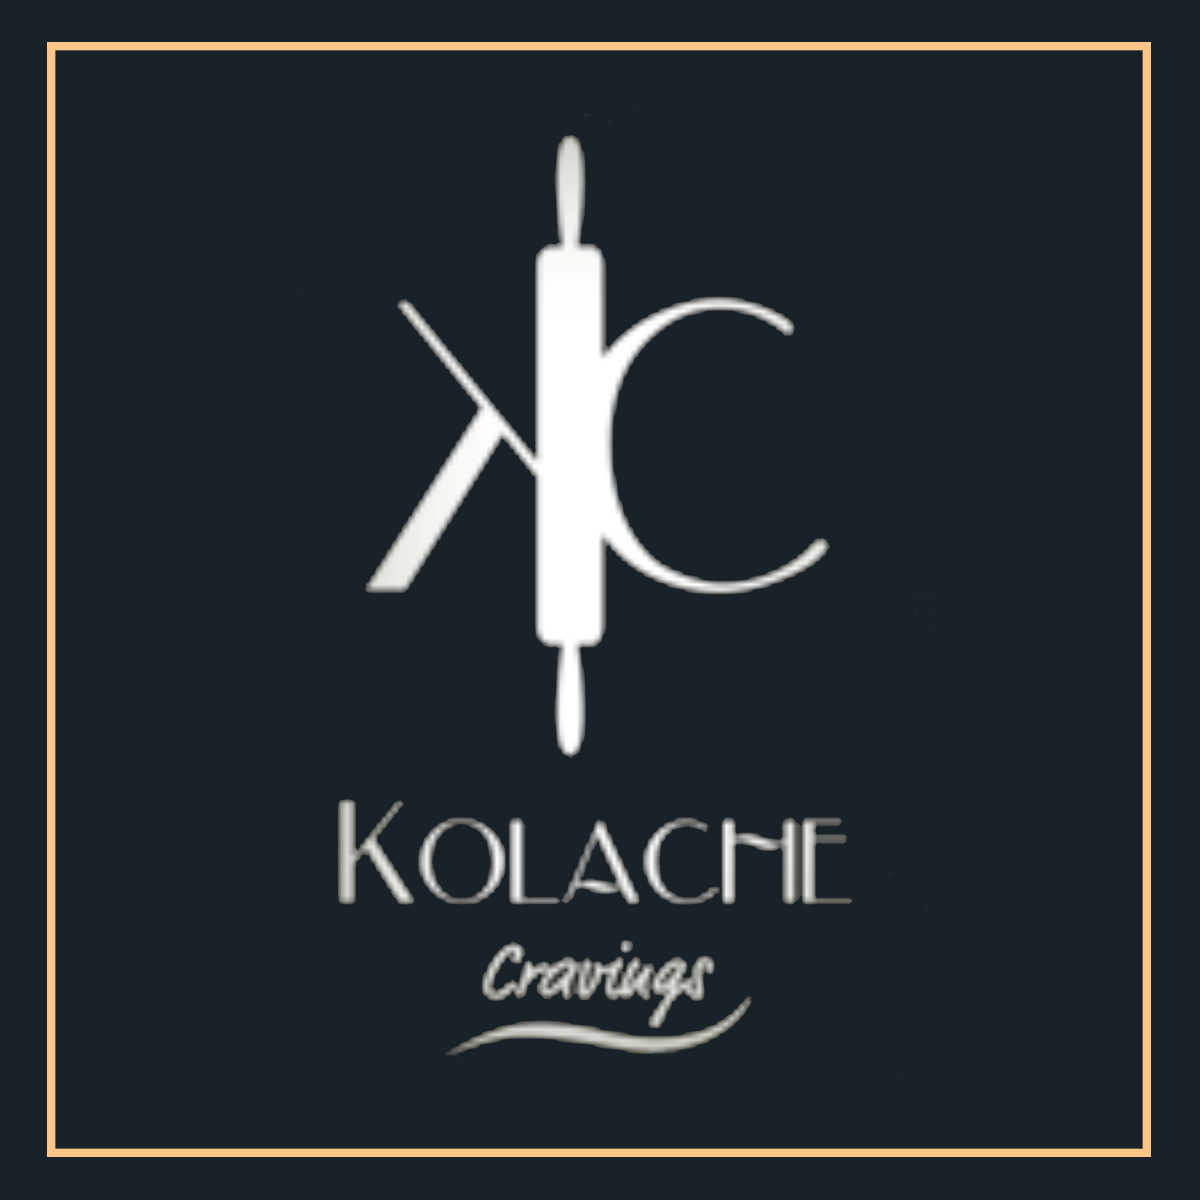 Kolache Cravings